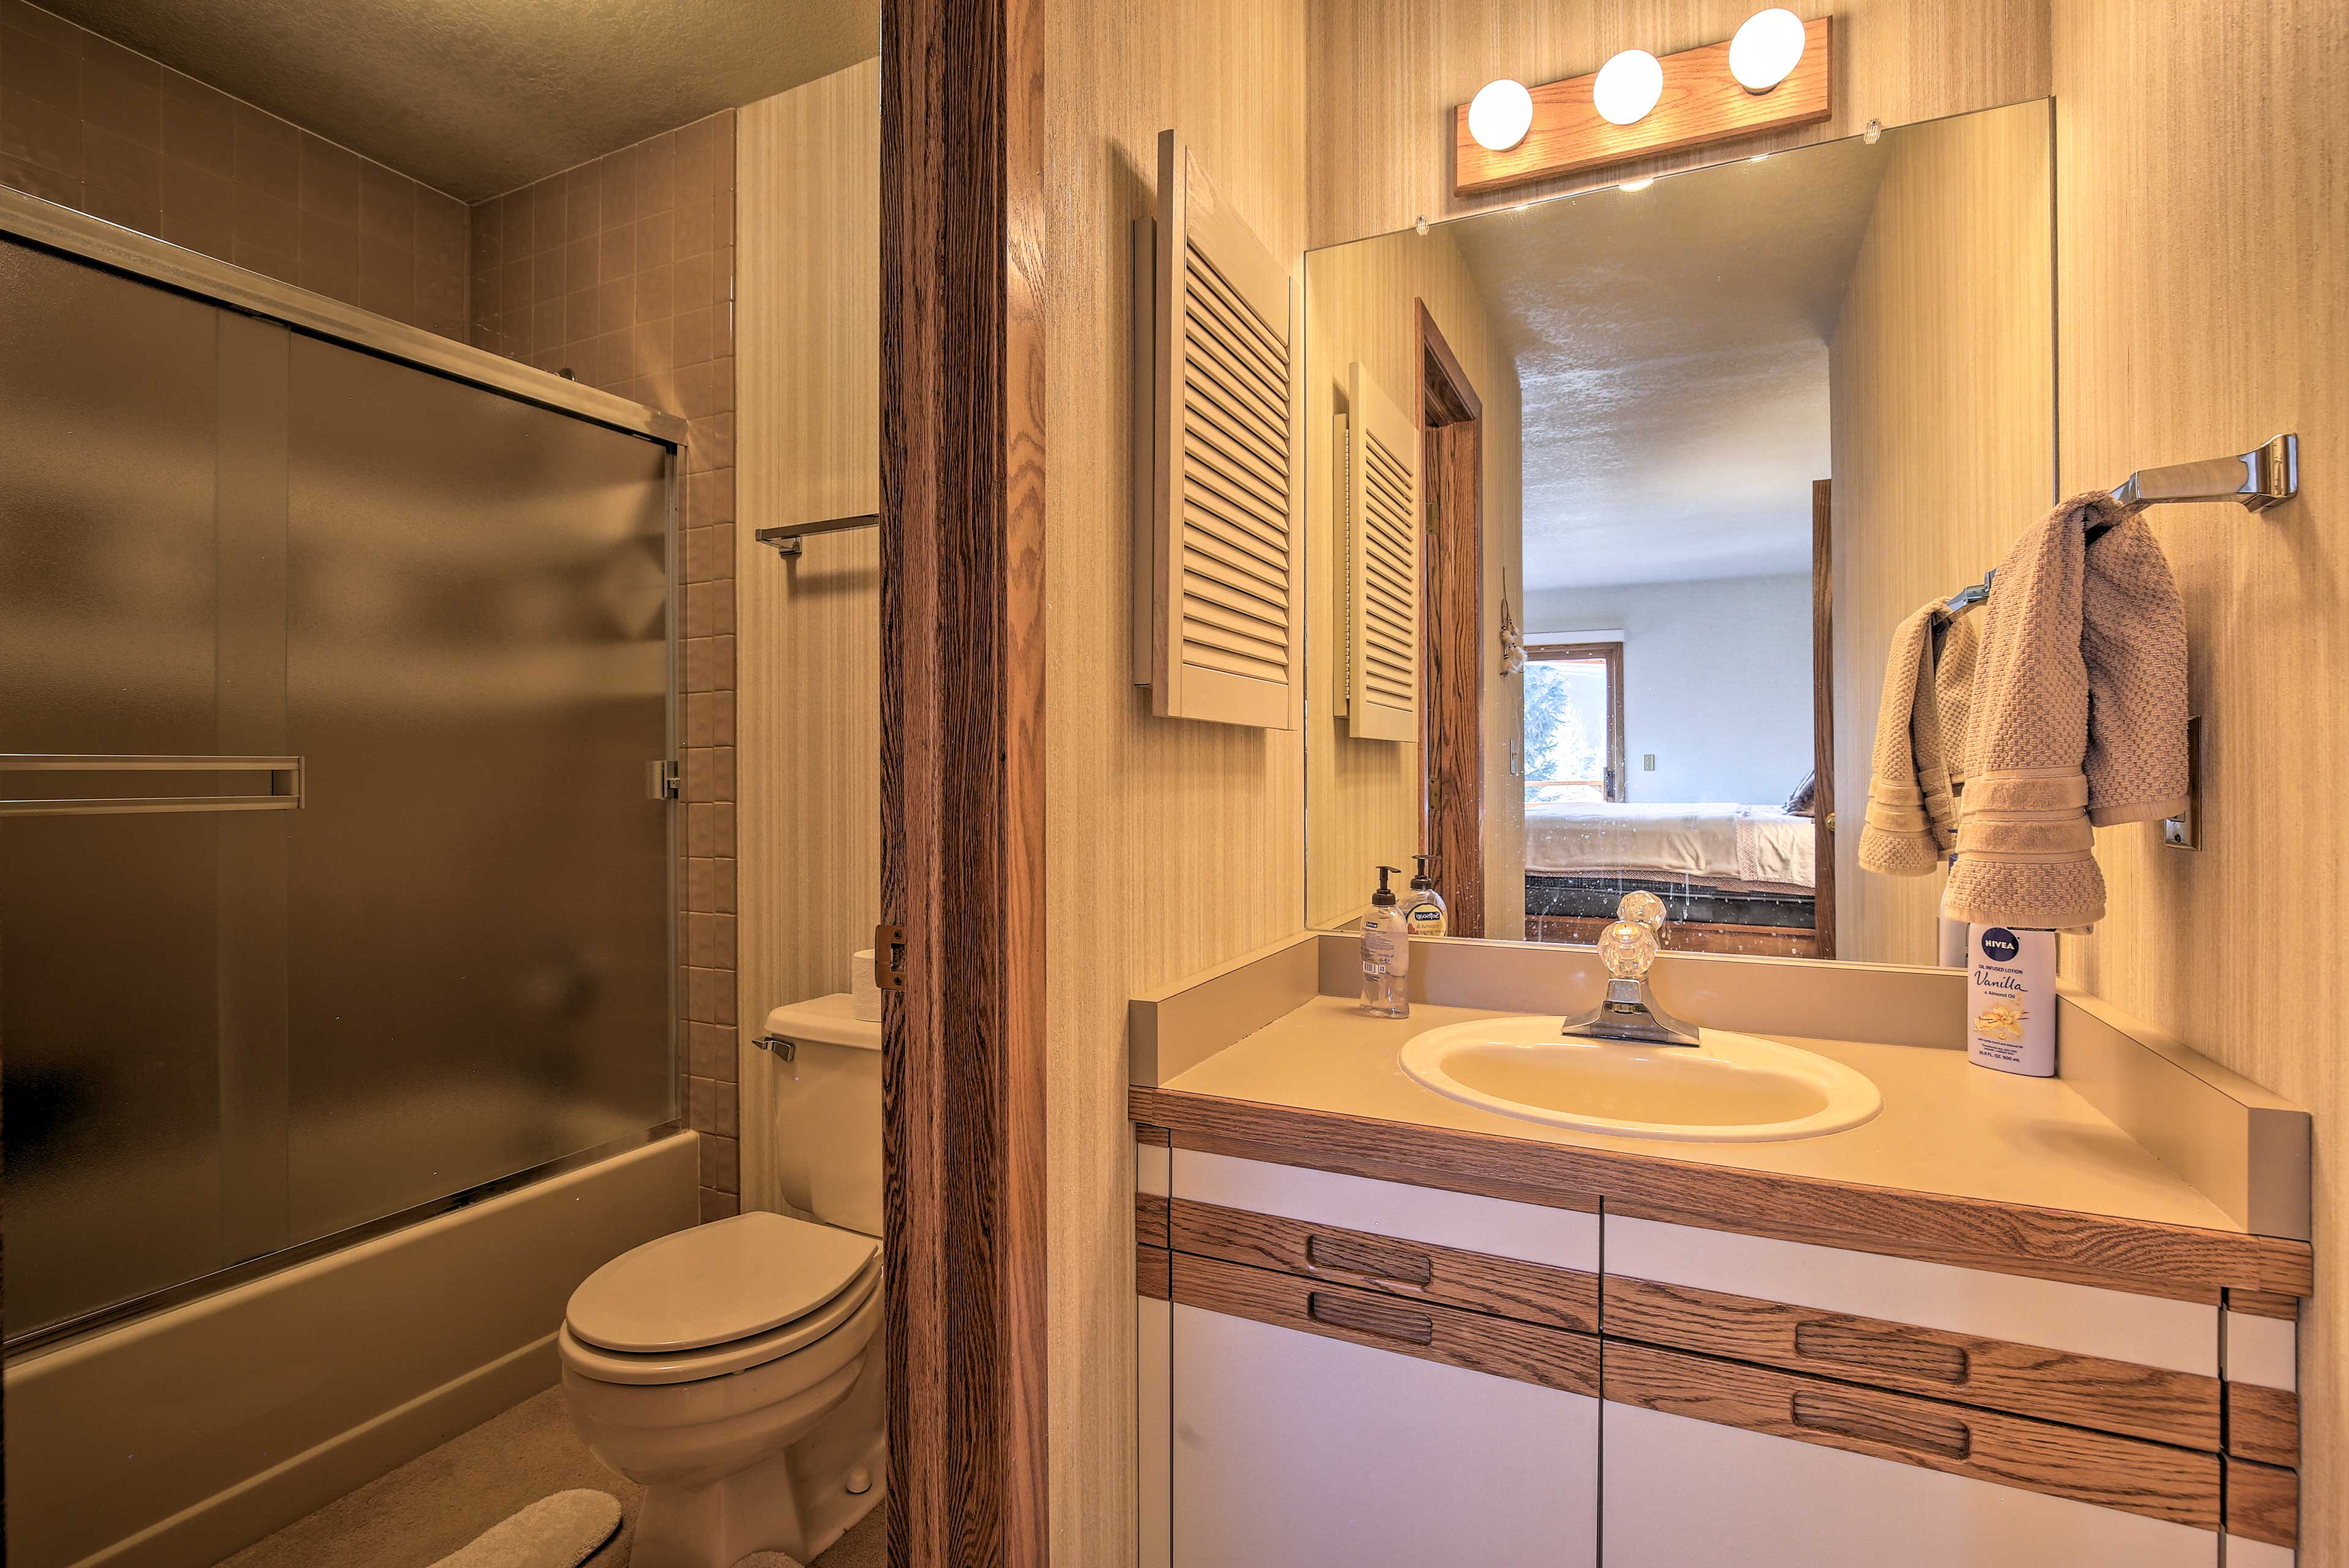 The 2 full bathrooms both have a shower/tub combo with sliding glass doors.